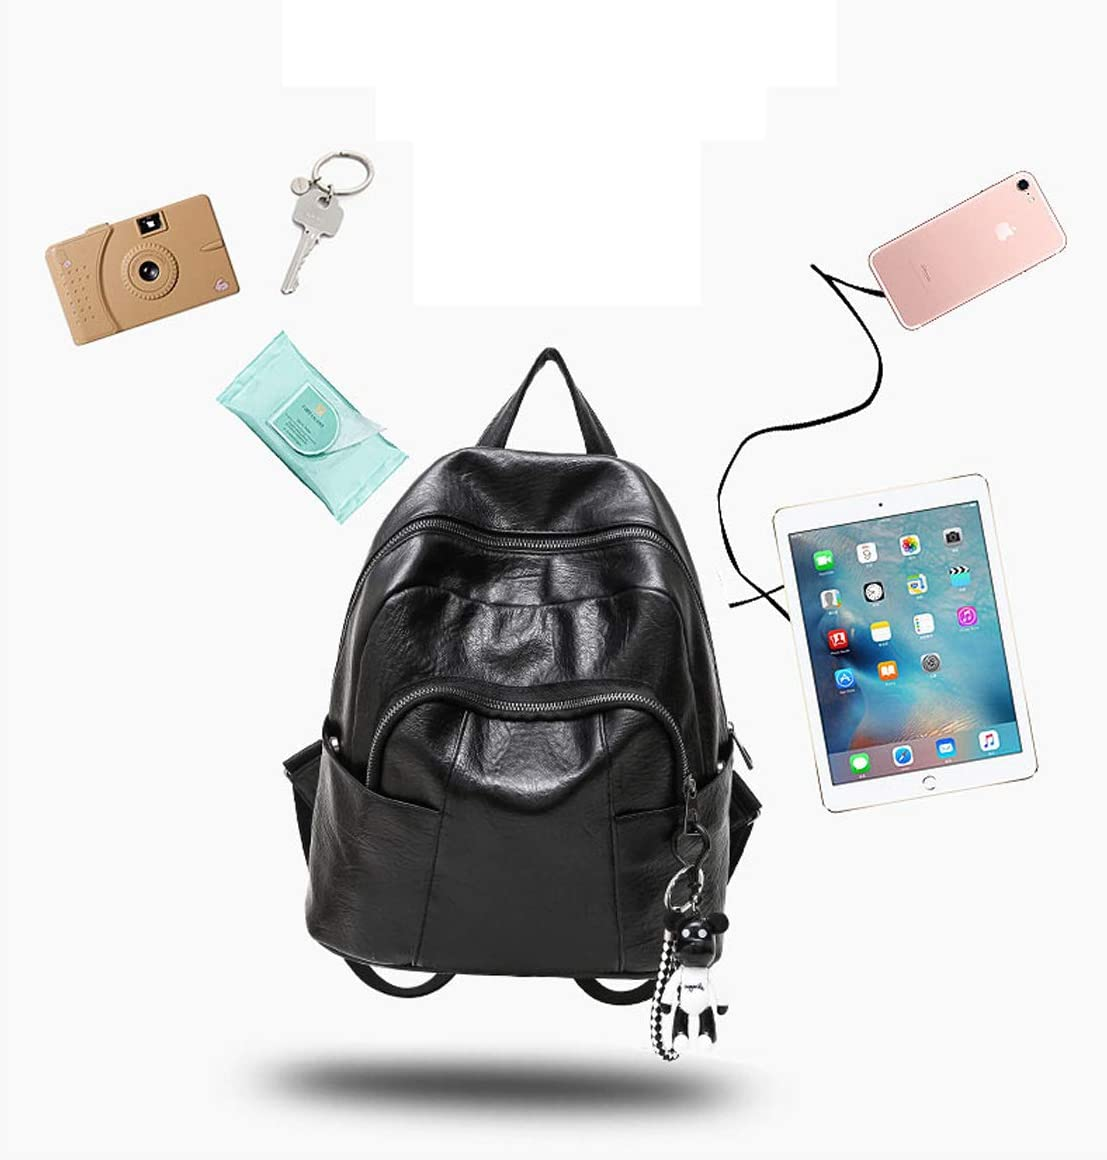 Outdoor Travel Haoyushangmao The Girls Versatile Backpack is Perfect for Everyday Travel Color : Black, Size : 28cm31cm13cm Fashion and Leisure Work School Black//Brown.